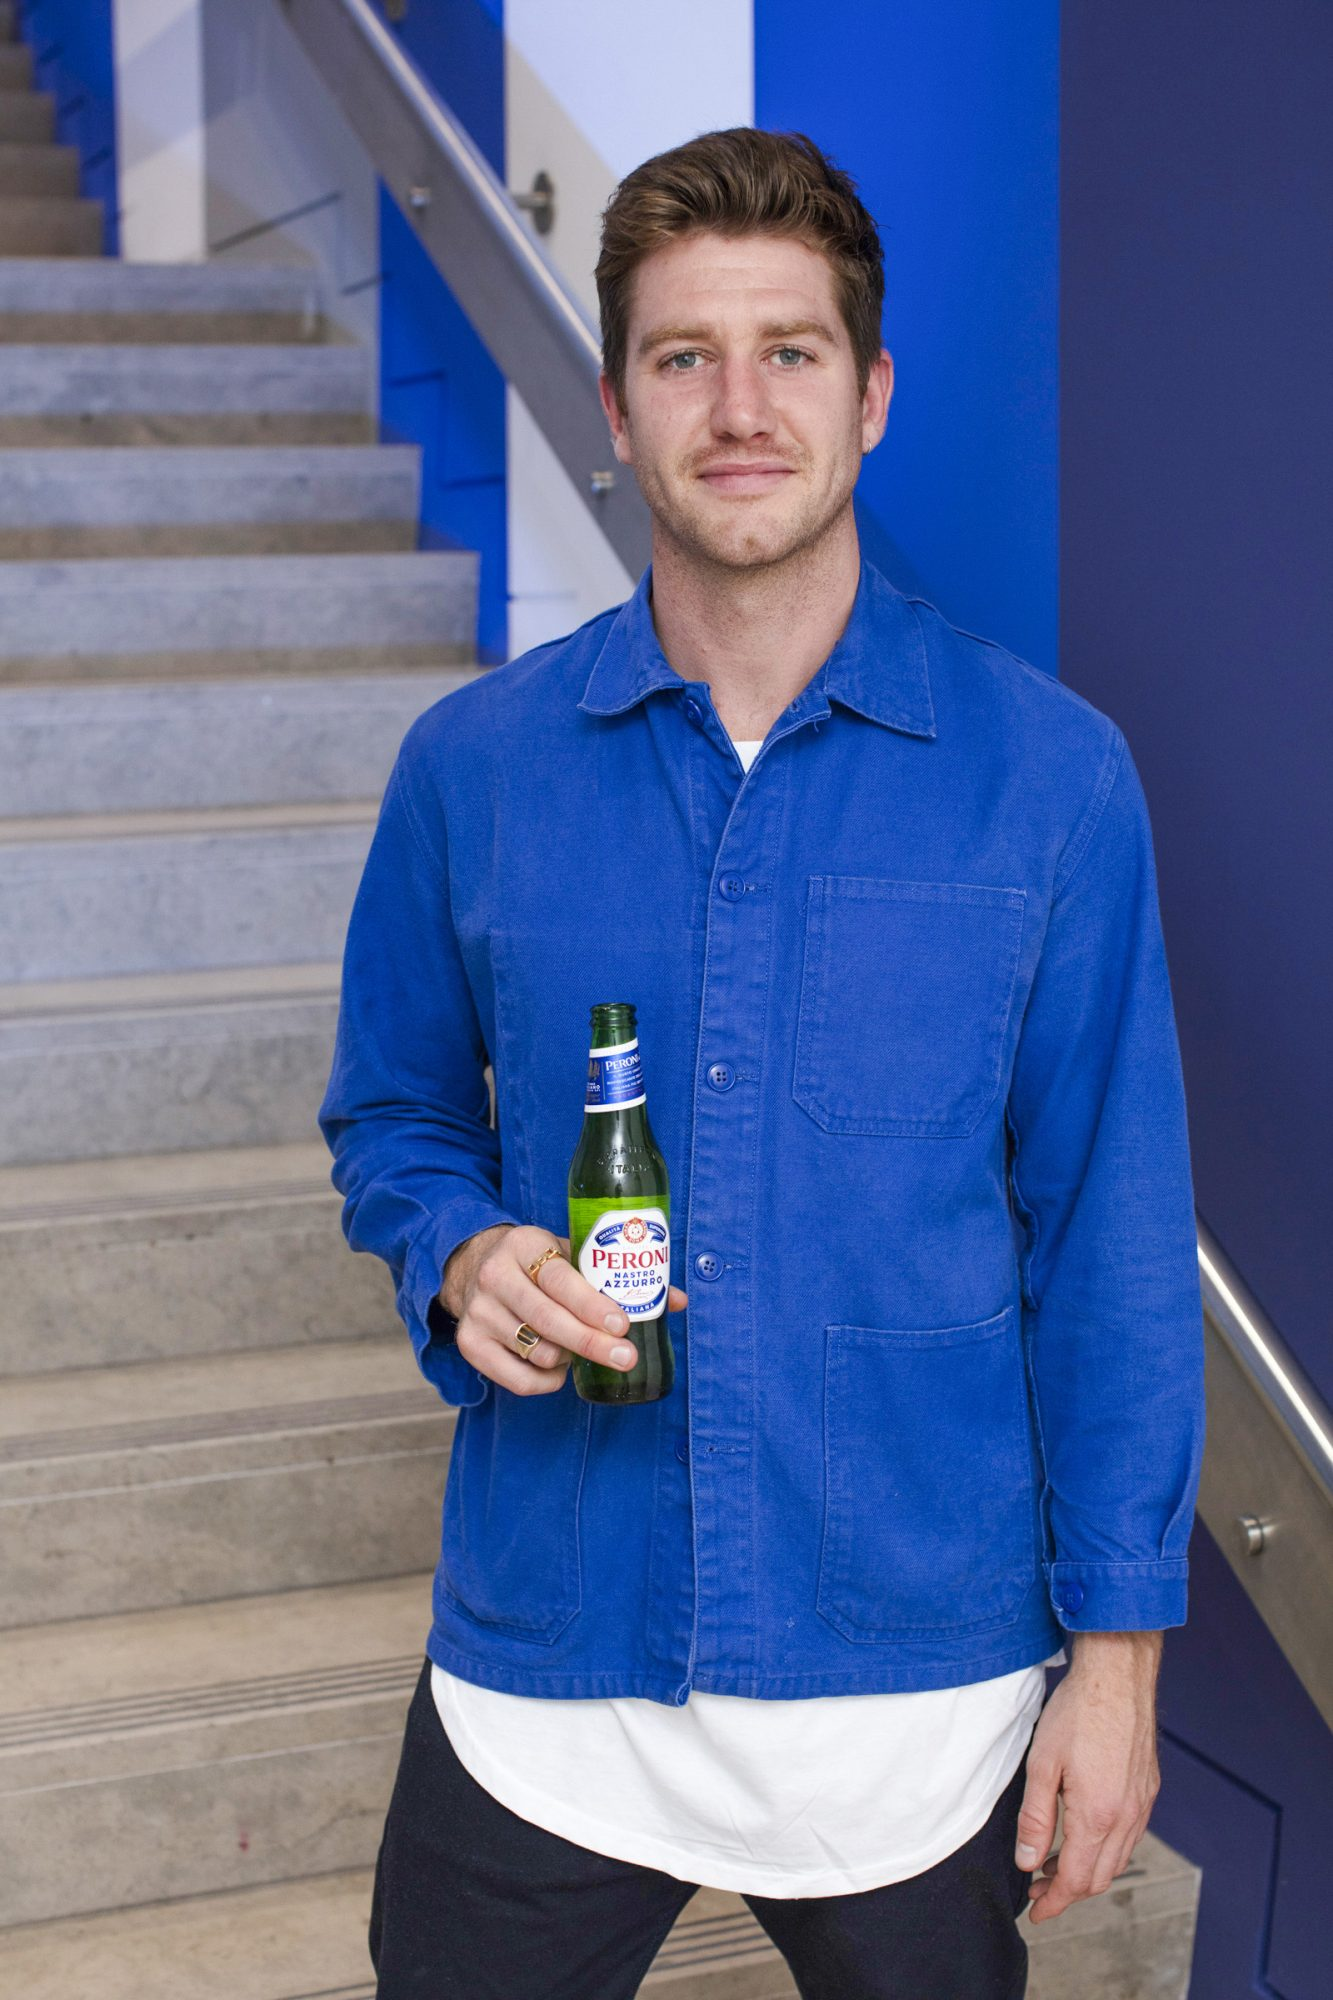 Ciaran Storey pictured at the launch of The House of Peroni, which is open at the RHA in Dublin until Sunday, 1st September 2019. This year's residency sees the RHA transformed into a stylish Peroni inspired experience, filled with food, drink and design. www.thehouseofperoni.com Photo: Anthony Woods.